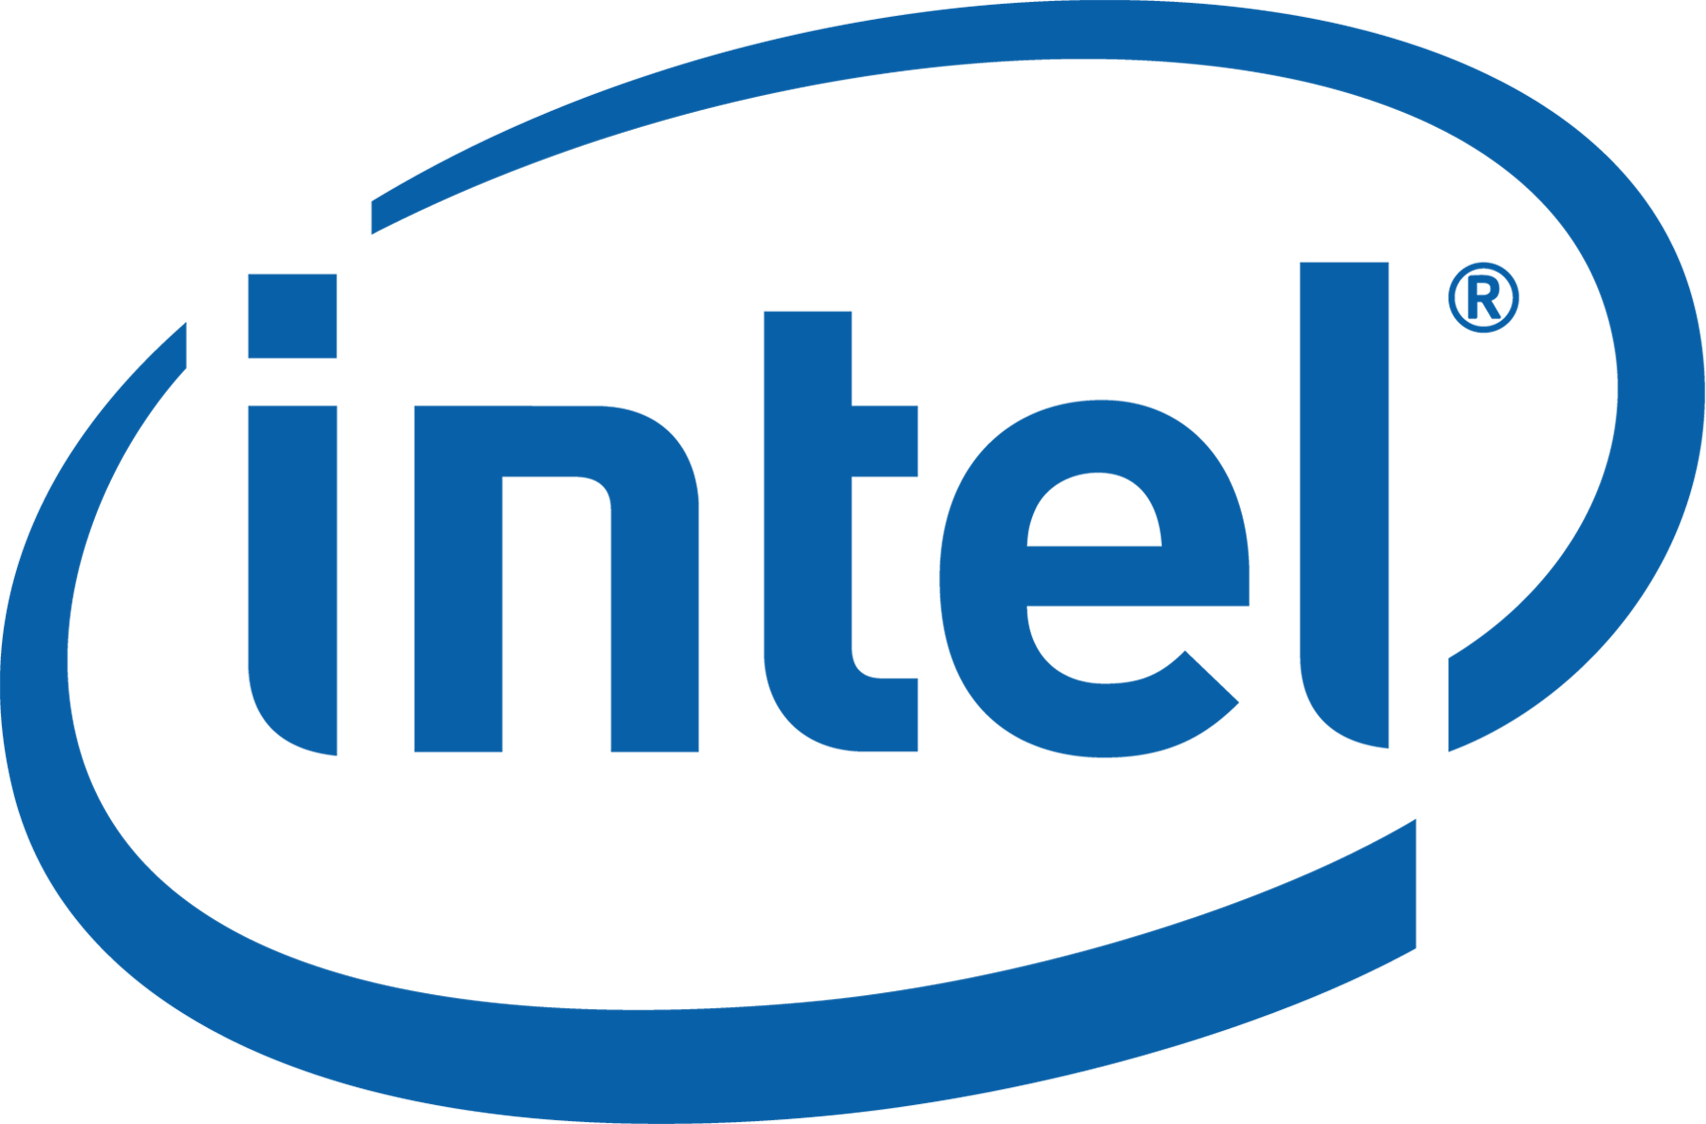 intel logo transparent png stickpng